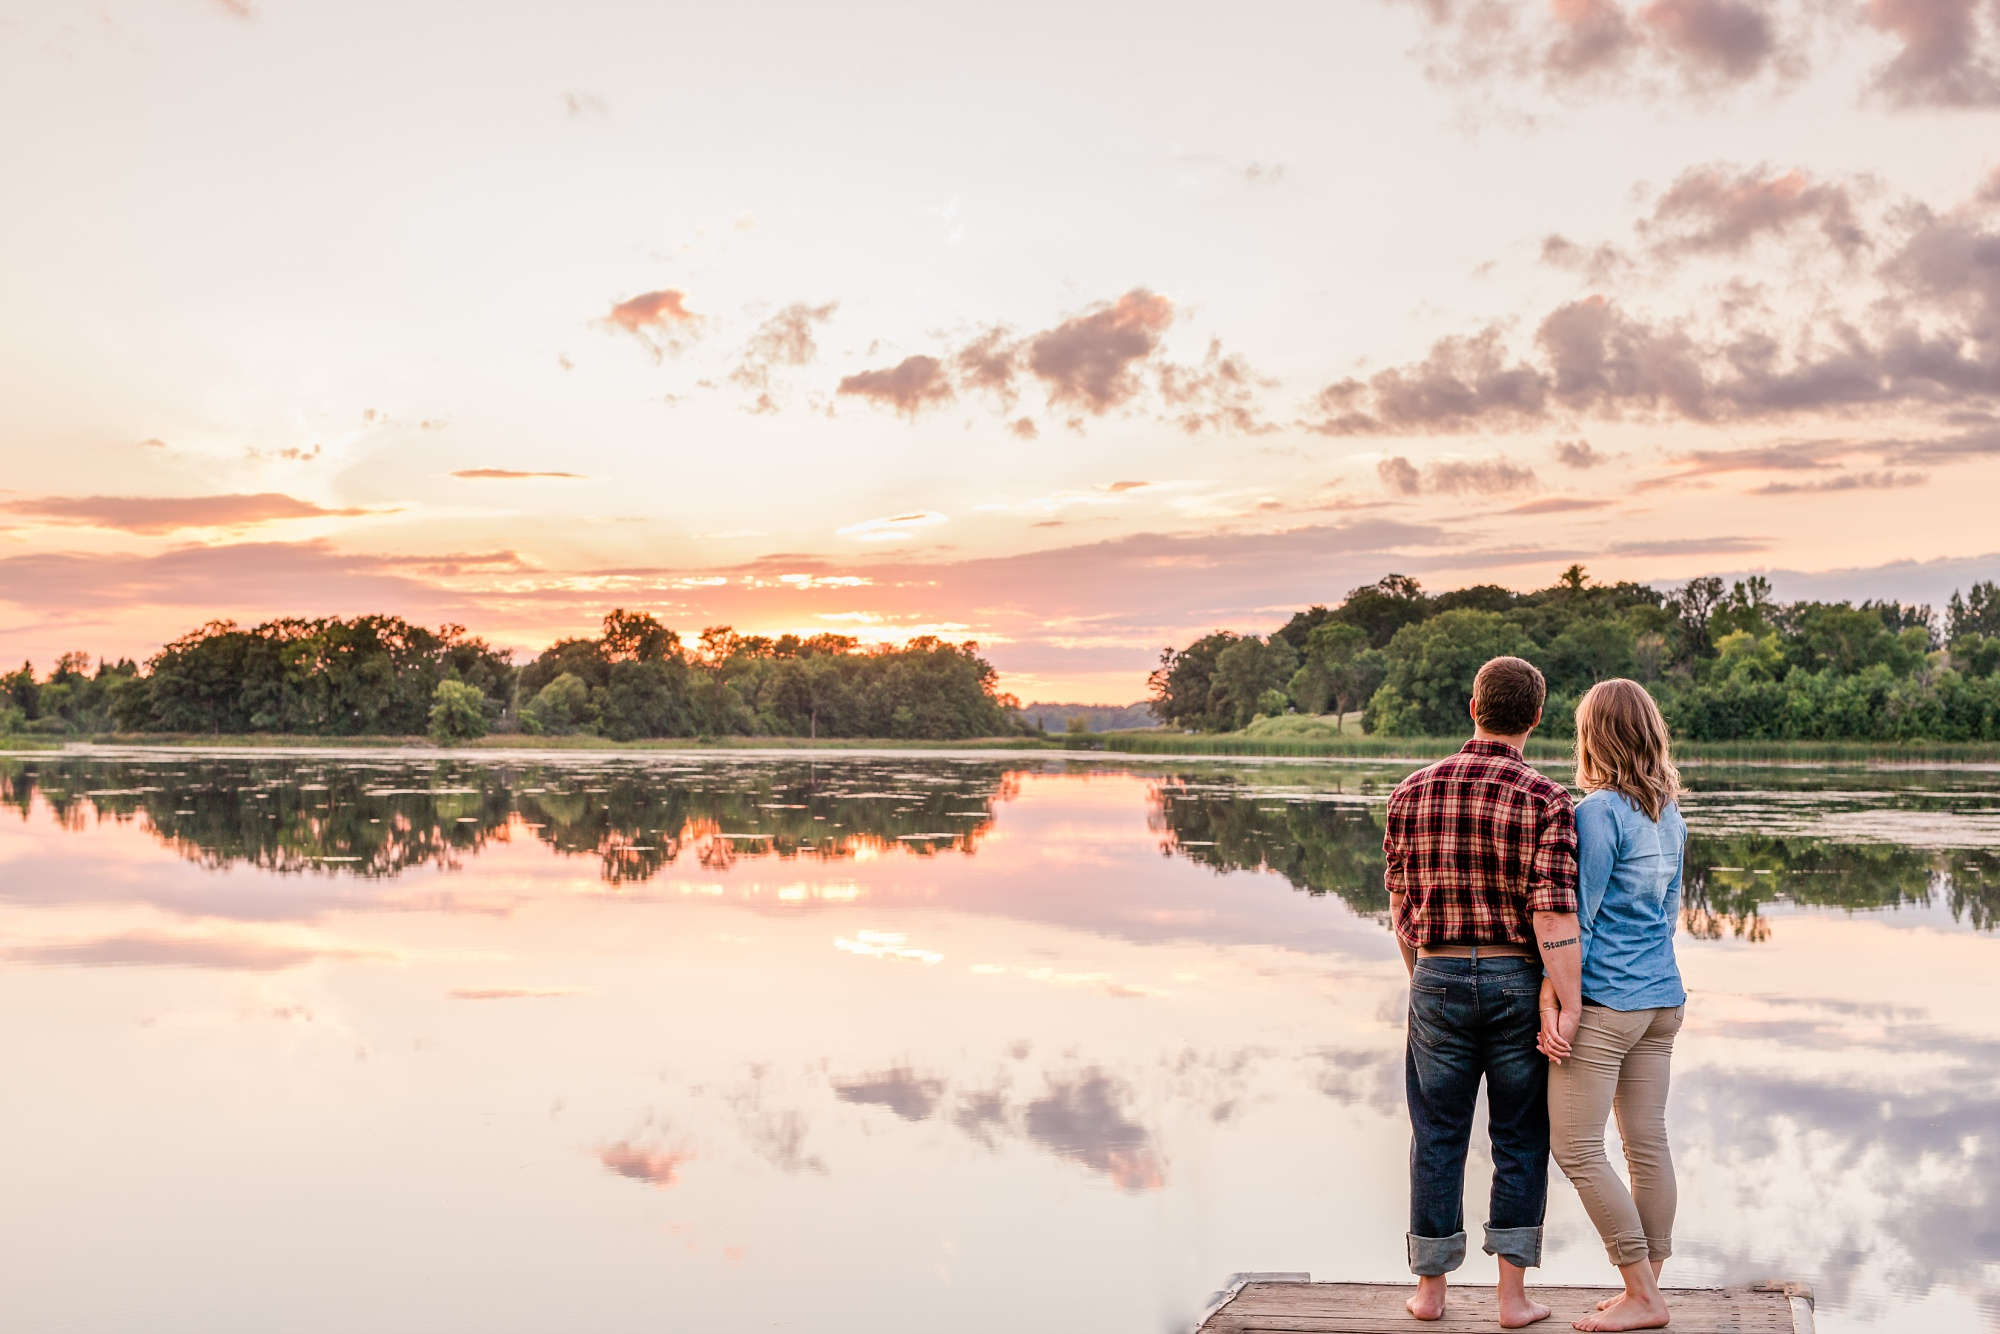 AmberLangerudPhotography_Countryside Engagement Session in Minnesota_3142.jpg